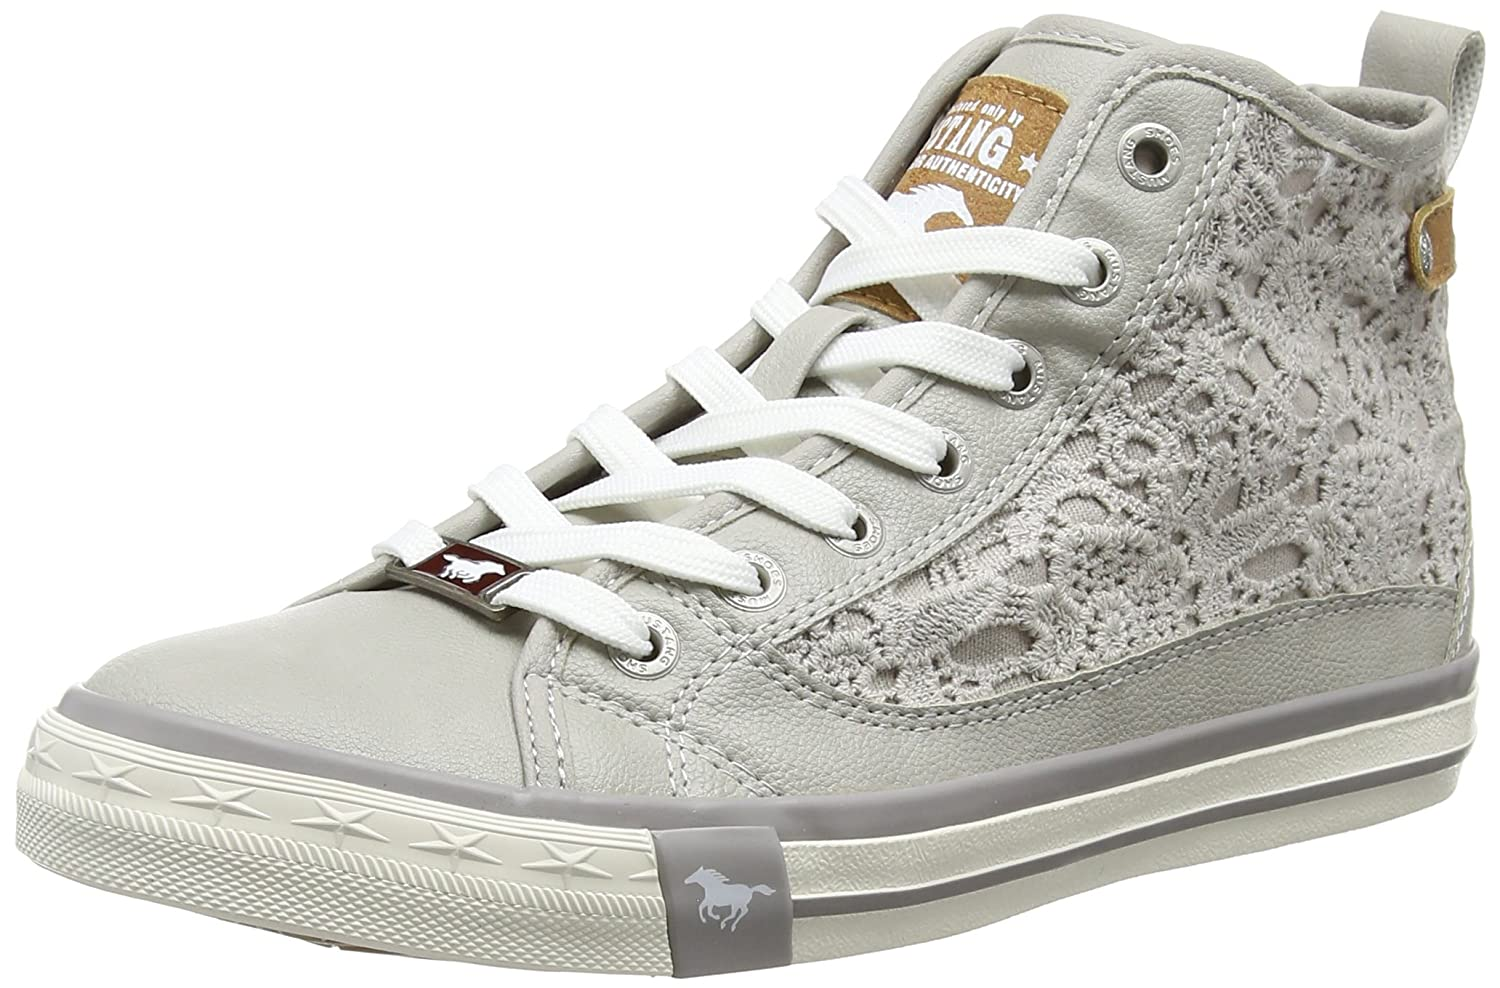 Mustang Damen Hellgrau) 1146-507-22 High-Top Grau (22 Hellgrau) Damen c36706